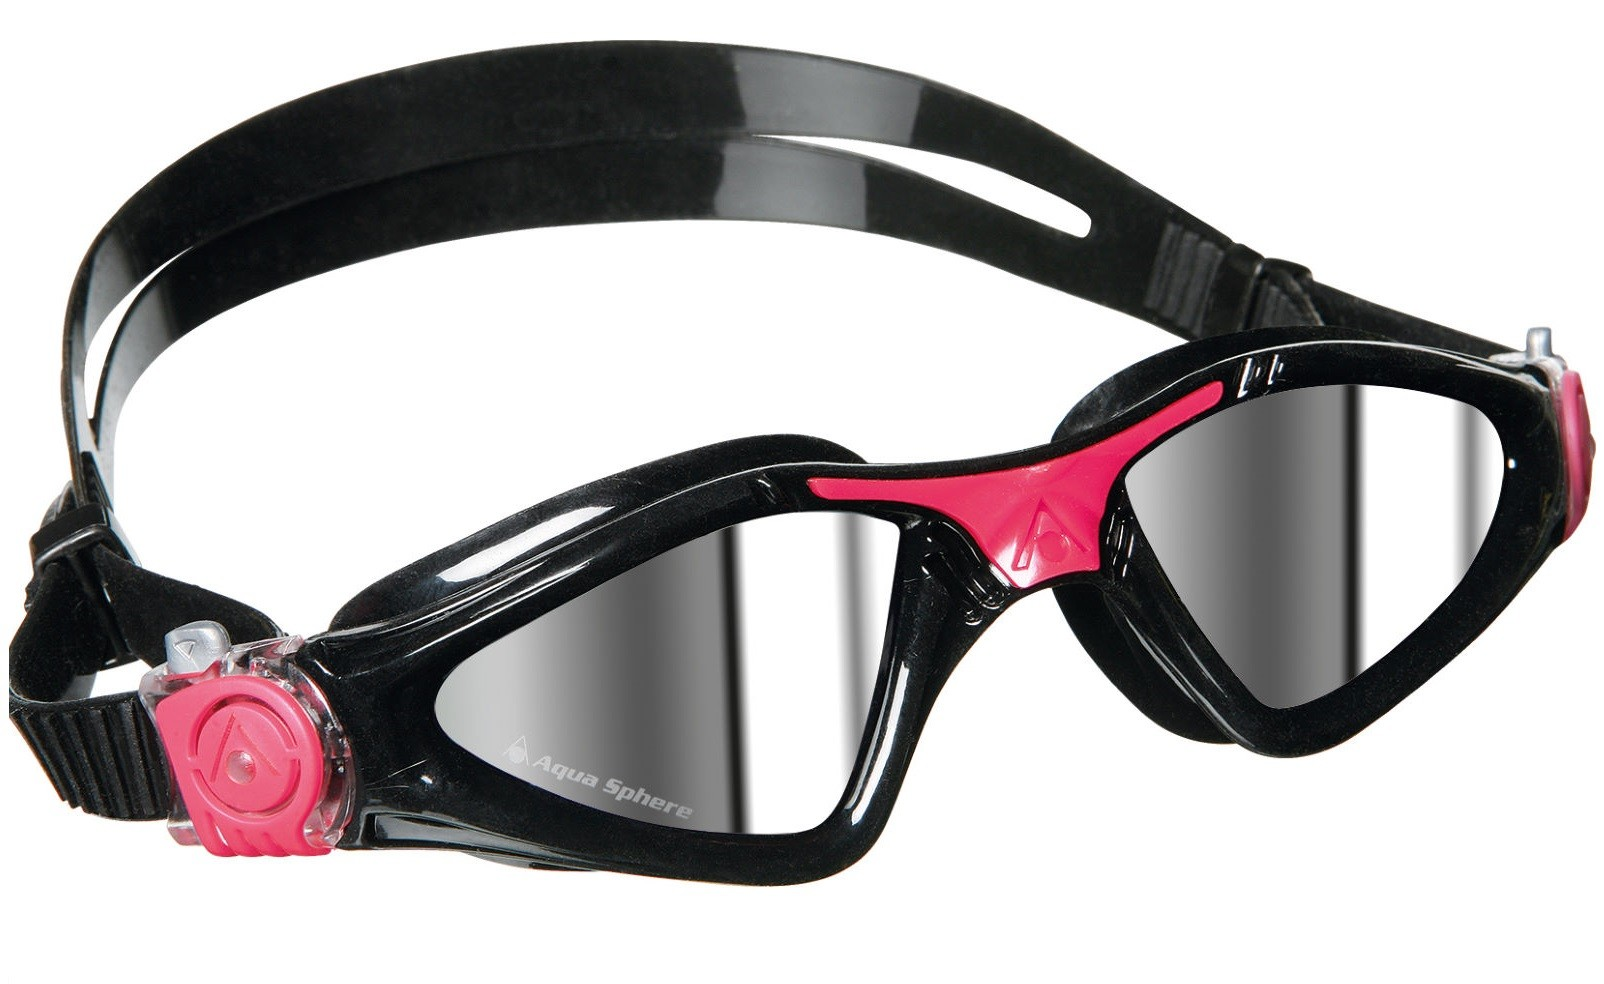 Goggle Kayenne Mirrored Aqua Sphere